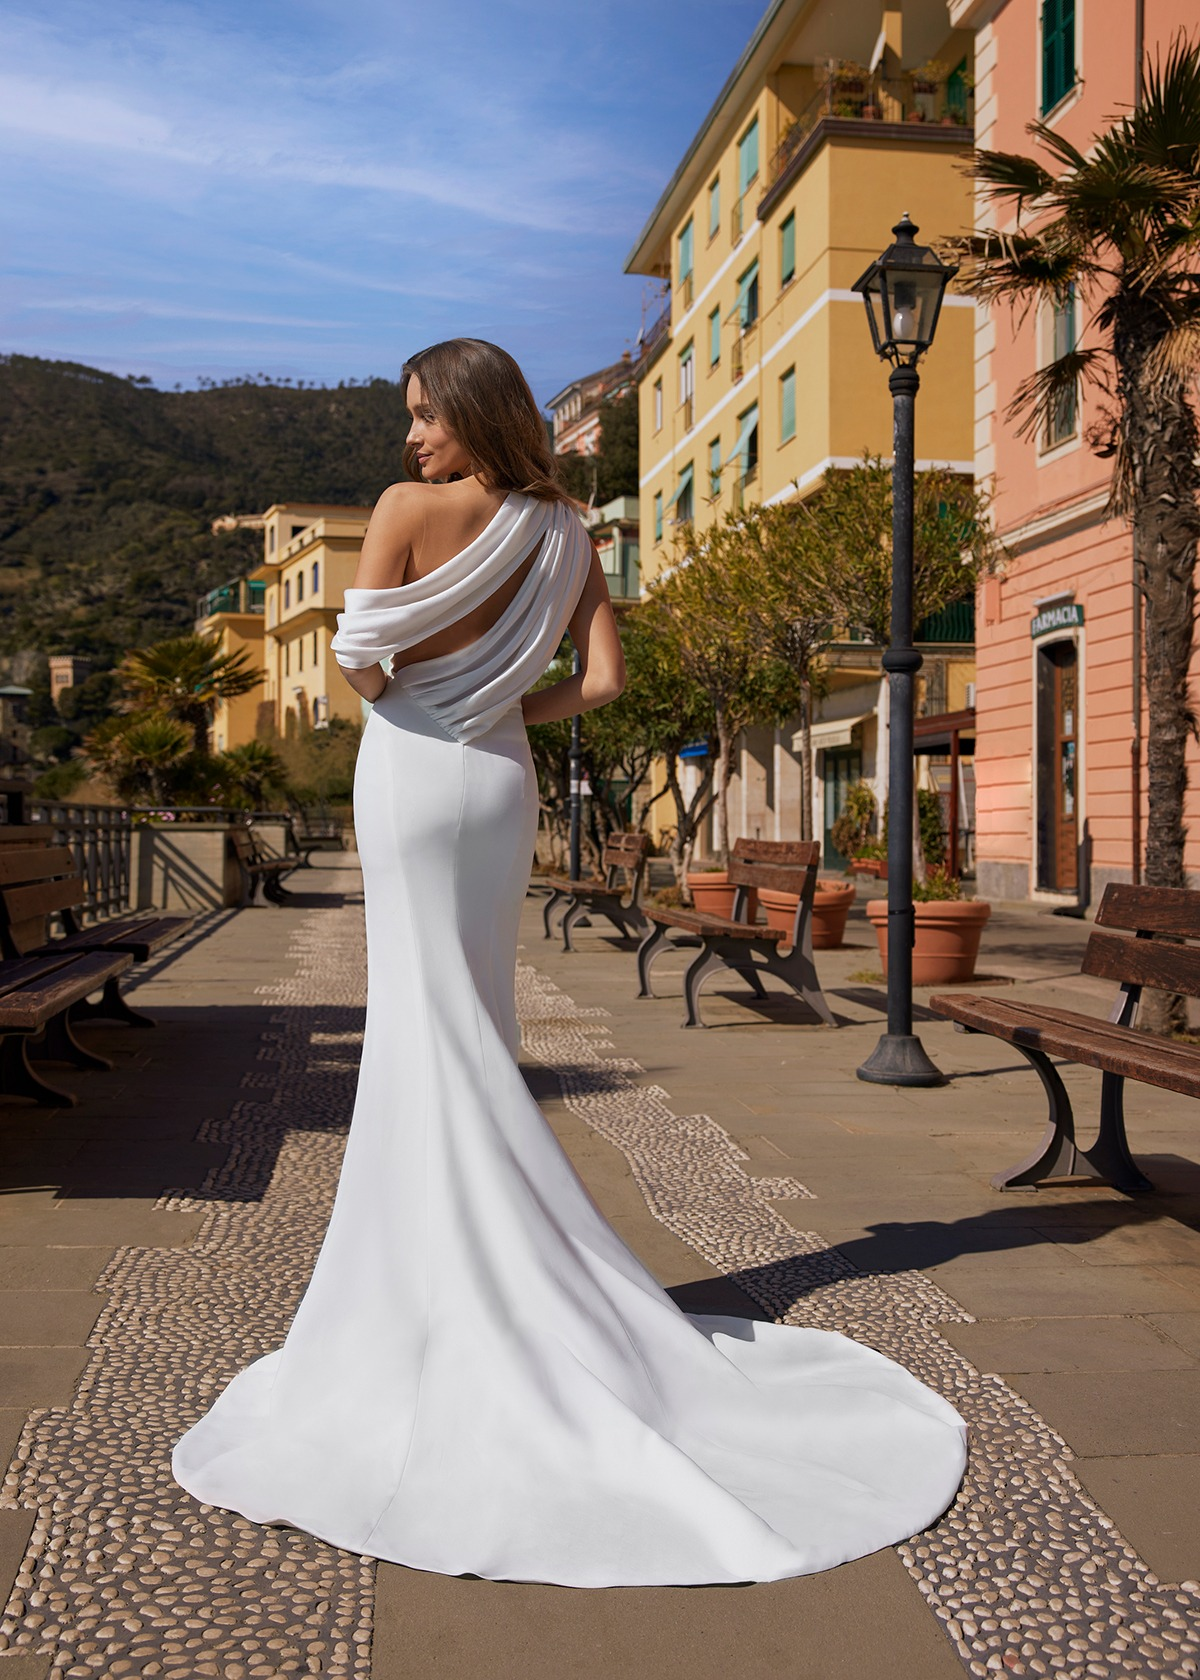 Ines by Ines Di Santo Spring 2022 Collection